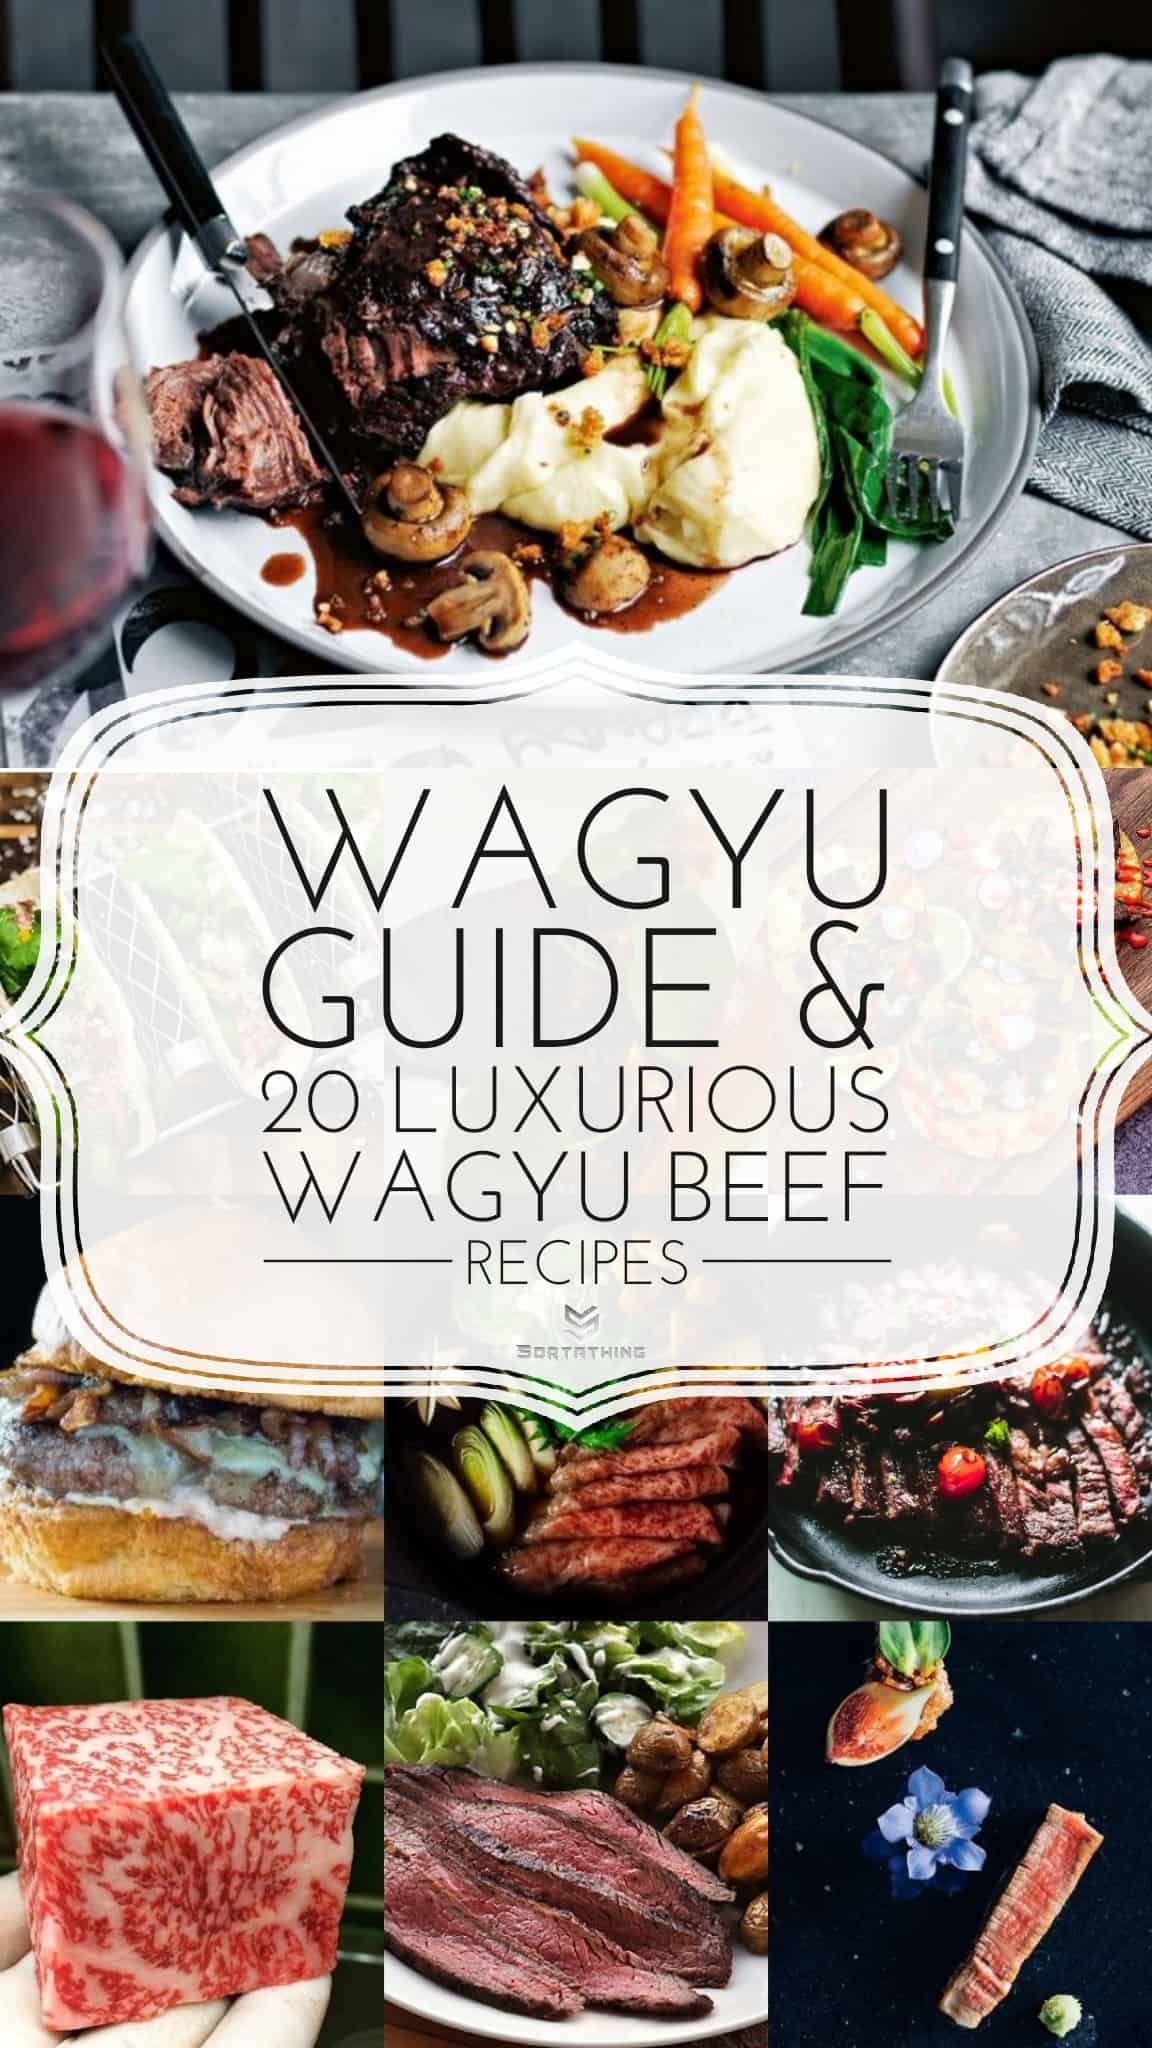 Wagyu Beef Guide and Recipes